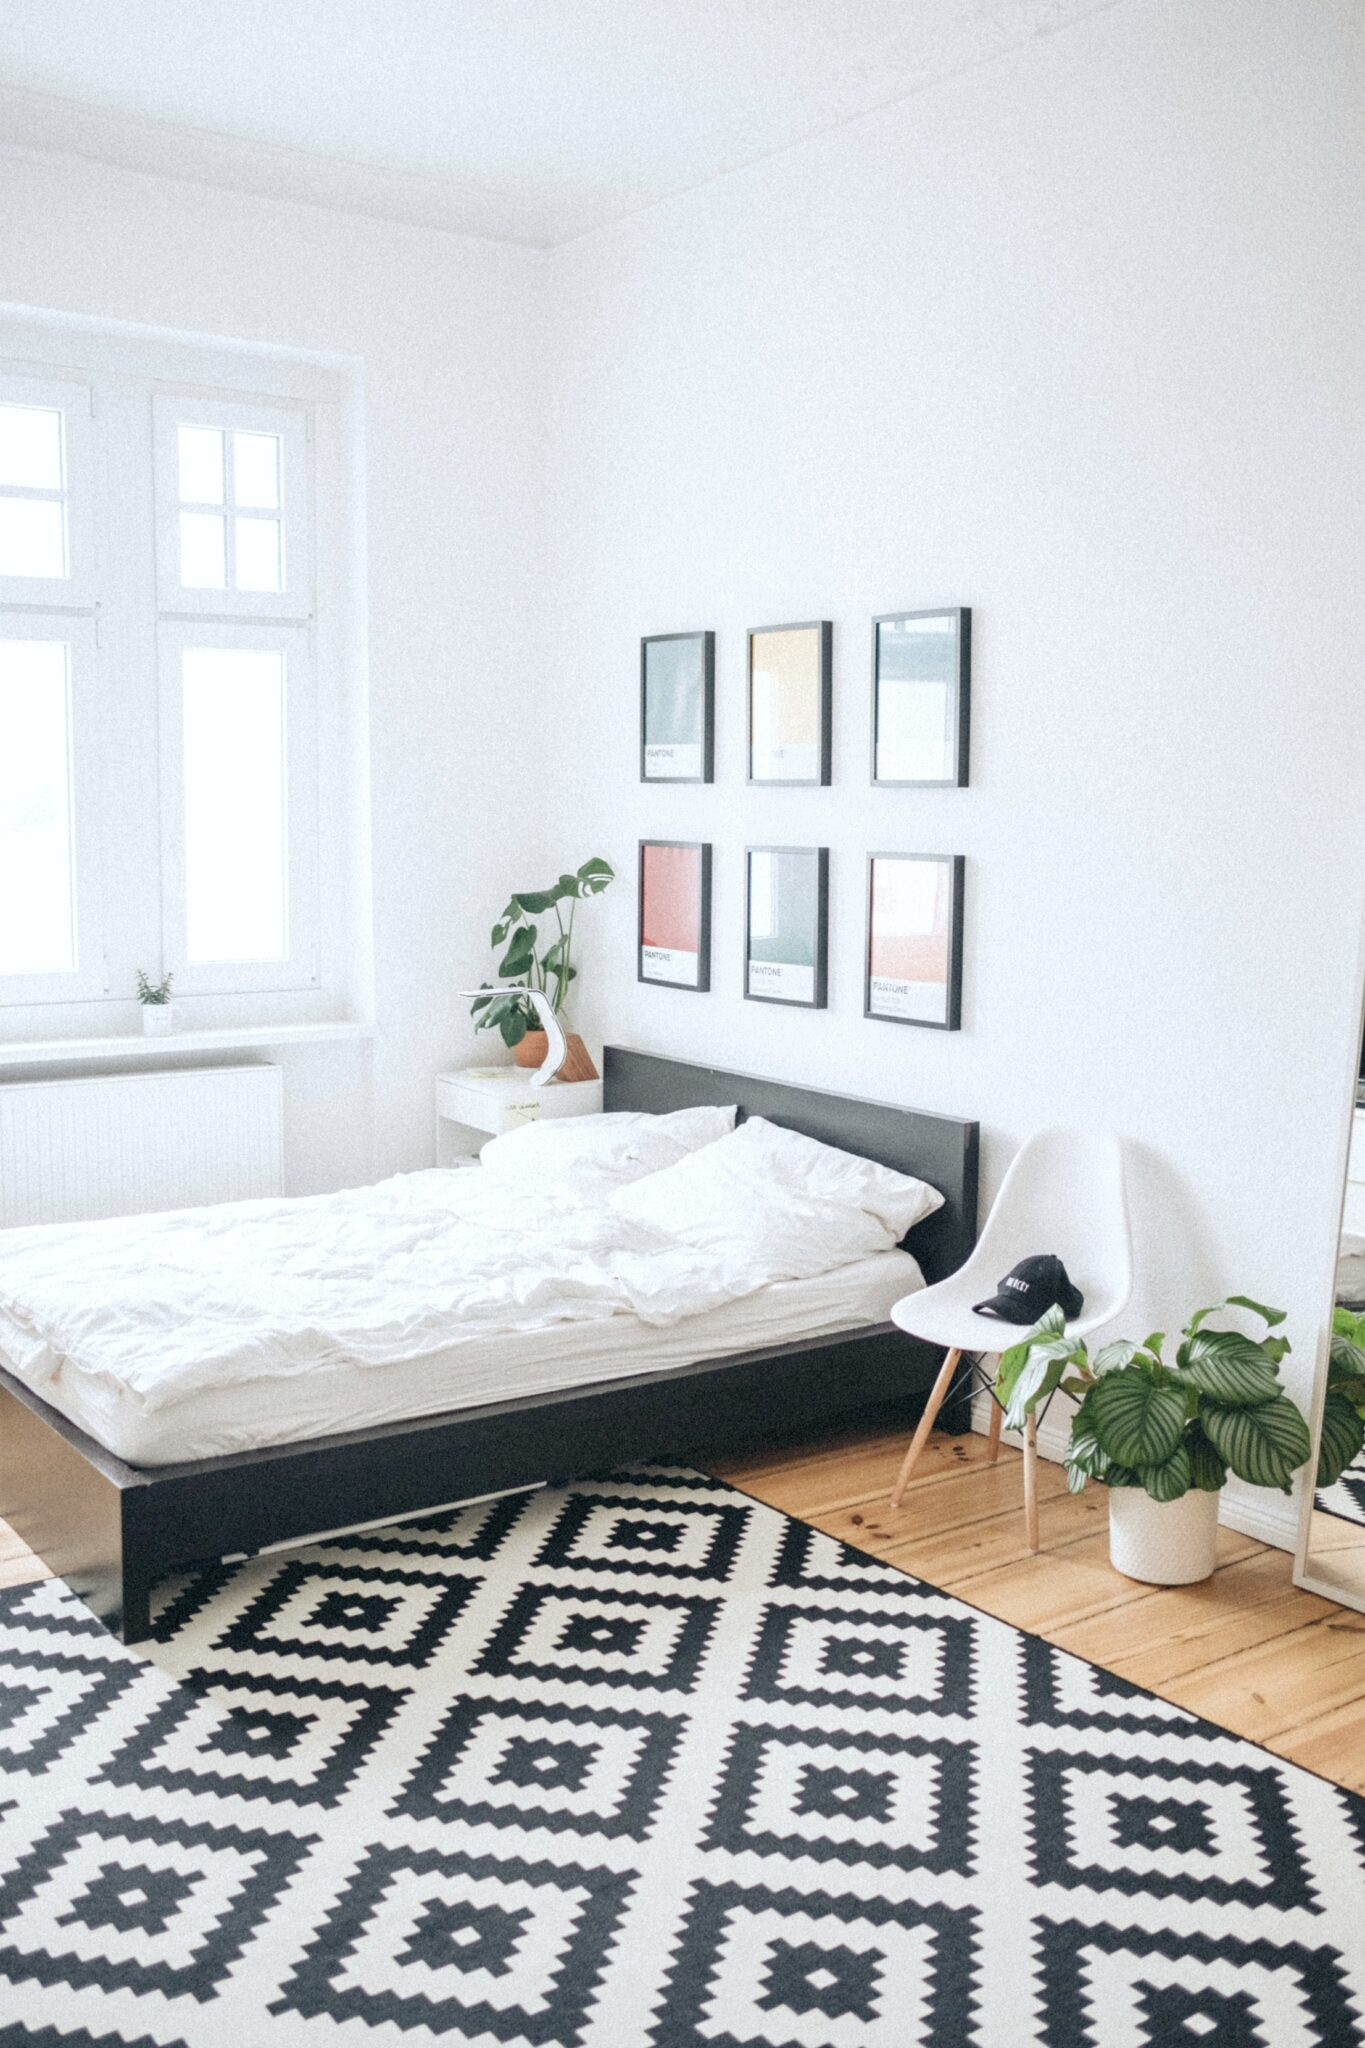 A bedroom with a black and white rug, clean, minimal style, with plants.